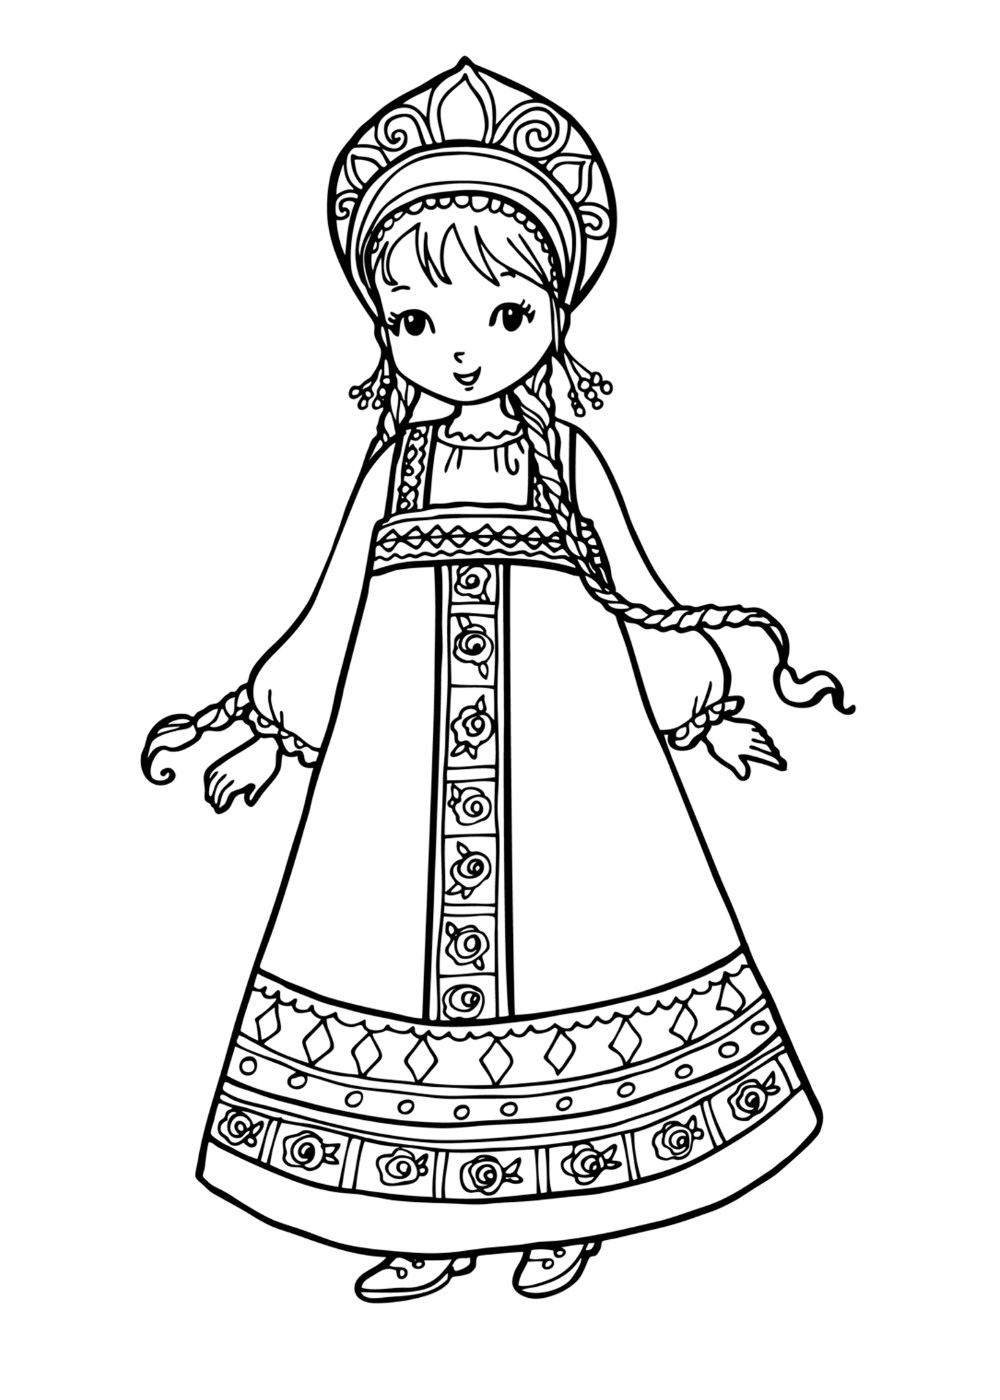 coloring pages for girls dresses dress coloring pages free printable dress coloring pages pages for dresses girls coloring